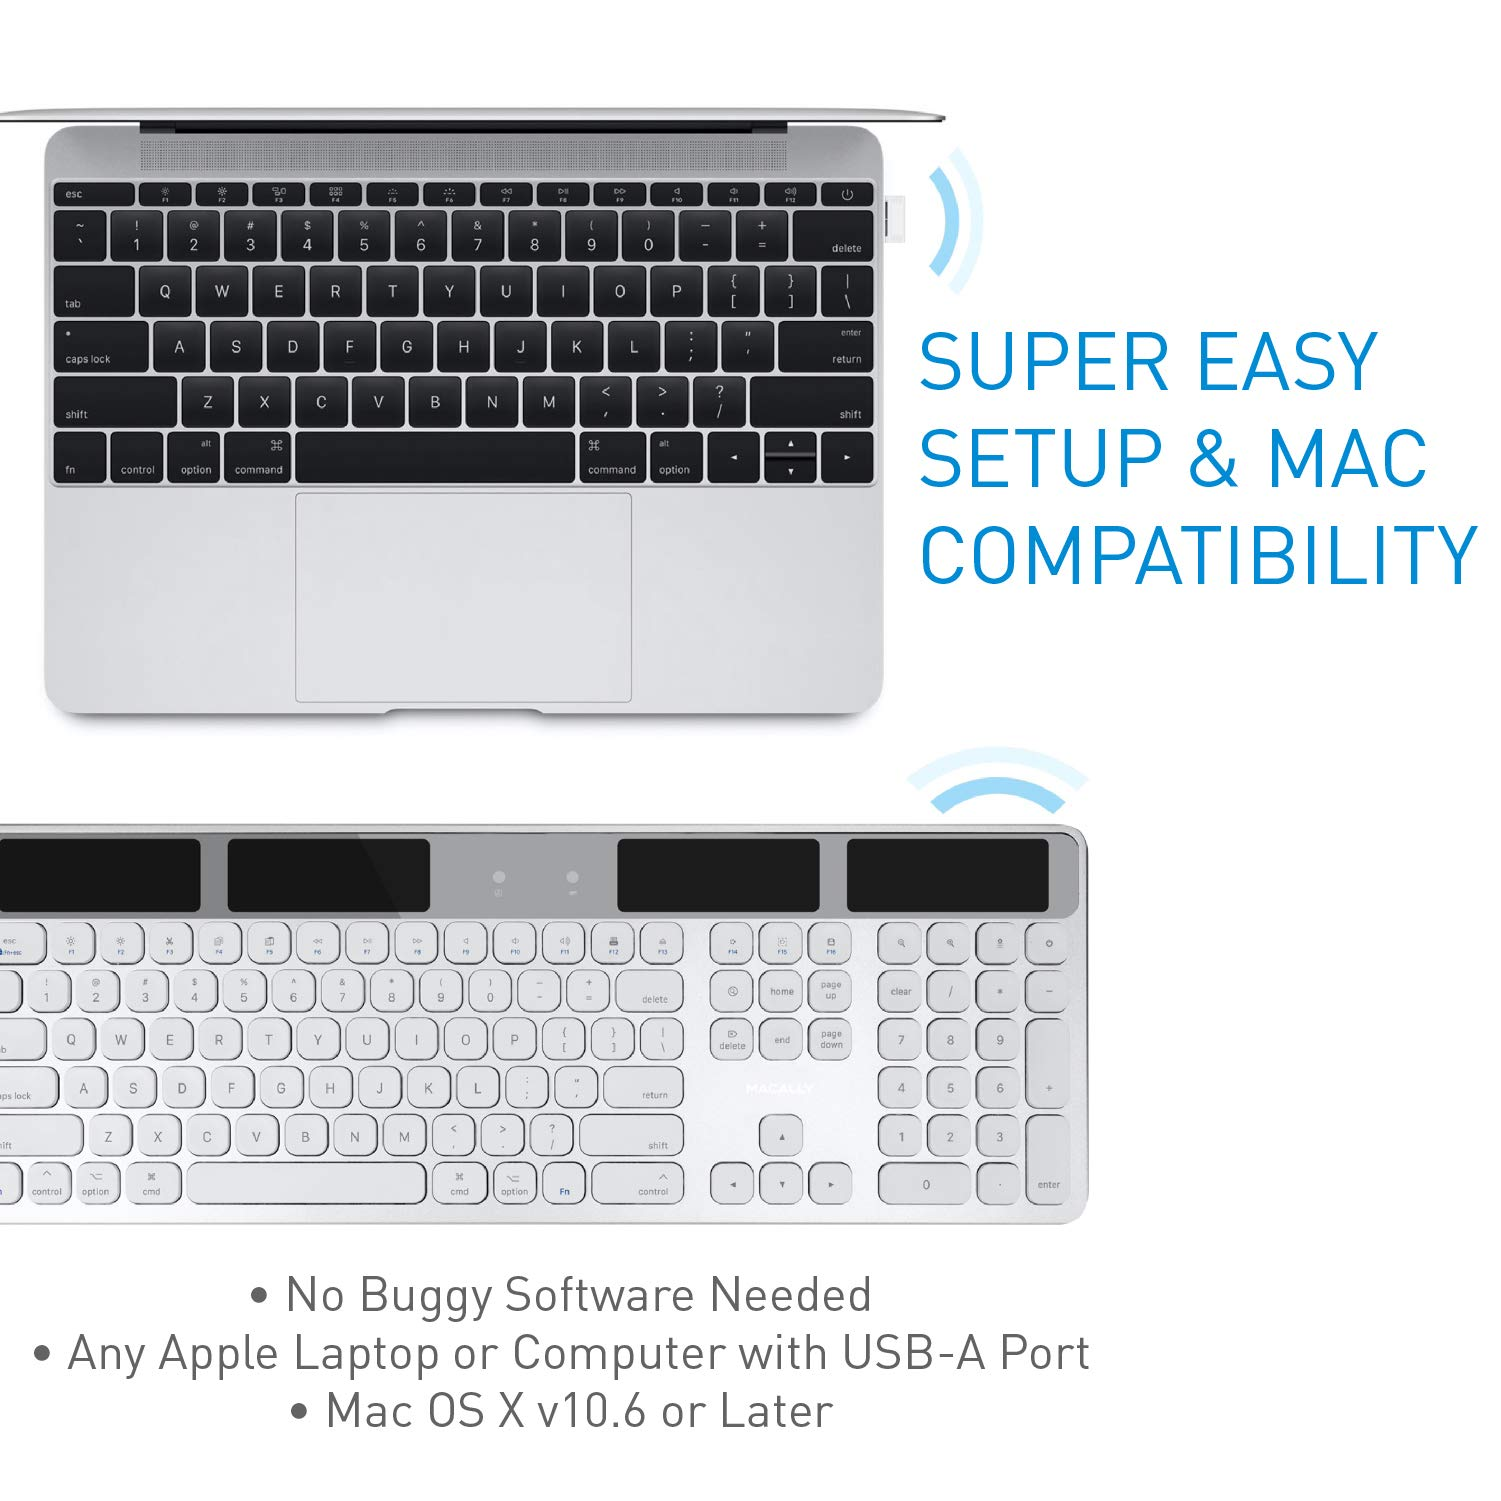 Macally Wireless Solar Keyboard for Mac Mini/Pro, iMac Desktop Computers & Apple MacBook Pro/Air Laptops | 2.4 Ghz RF USB Dongle | Caps Lock/Battery Indicators - Silver Aluminum, Gray by Macally (Image #6)